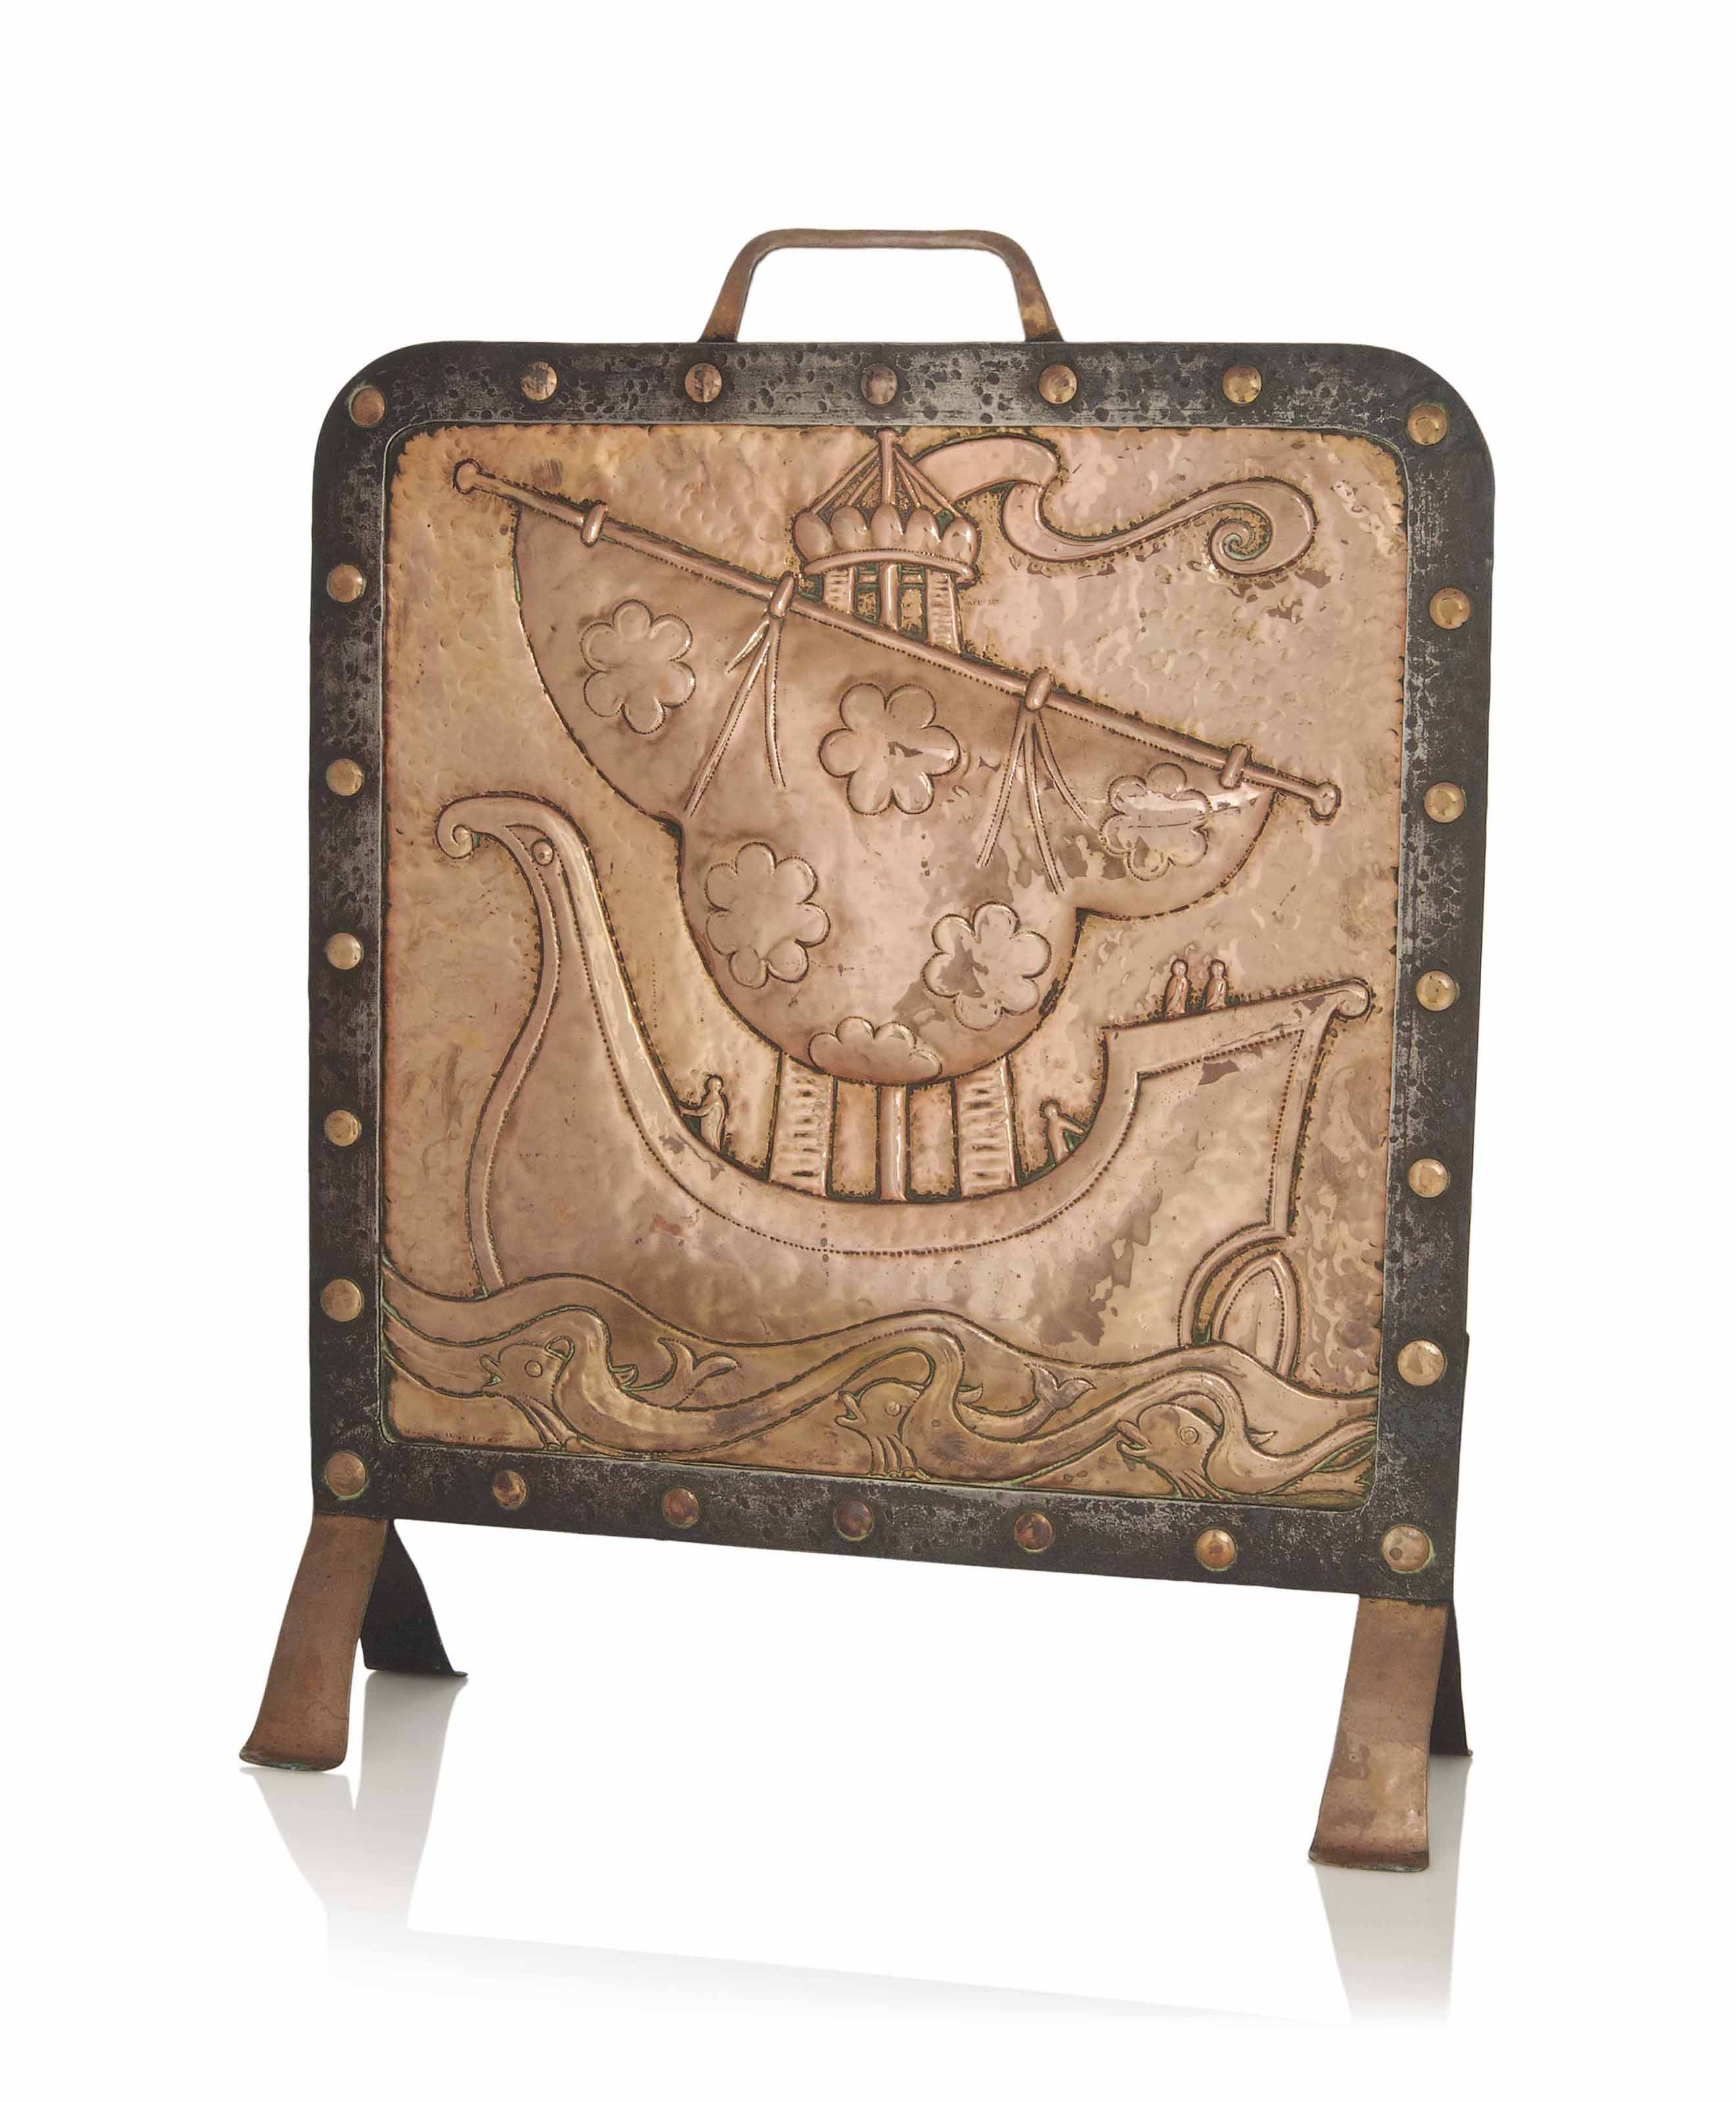 A JOHN PEARSON ARTS & CRAFTS COPPER AND WROUGHT IRON FIRE SCREEN